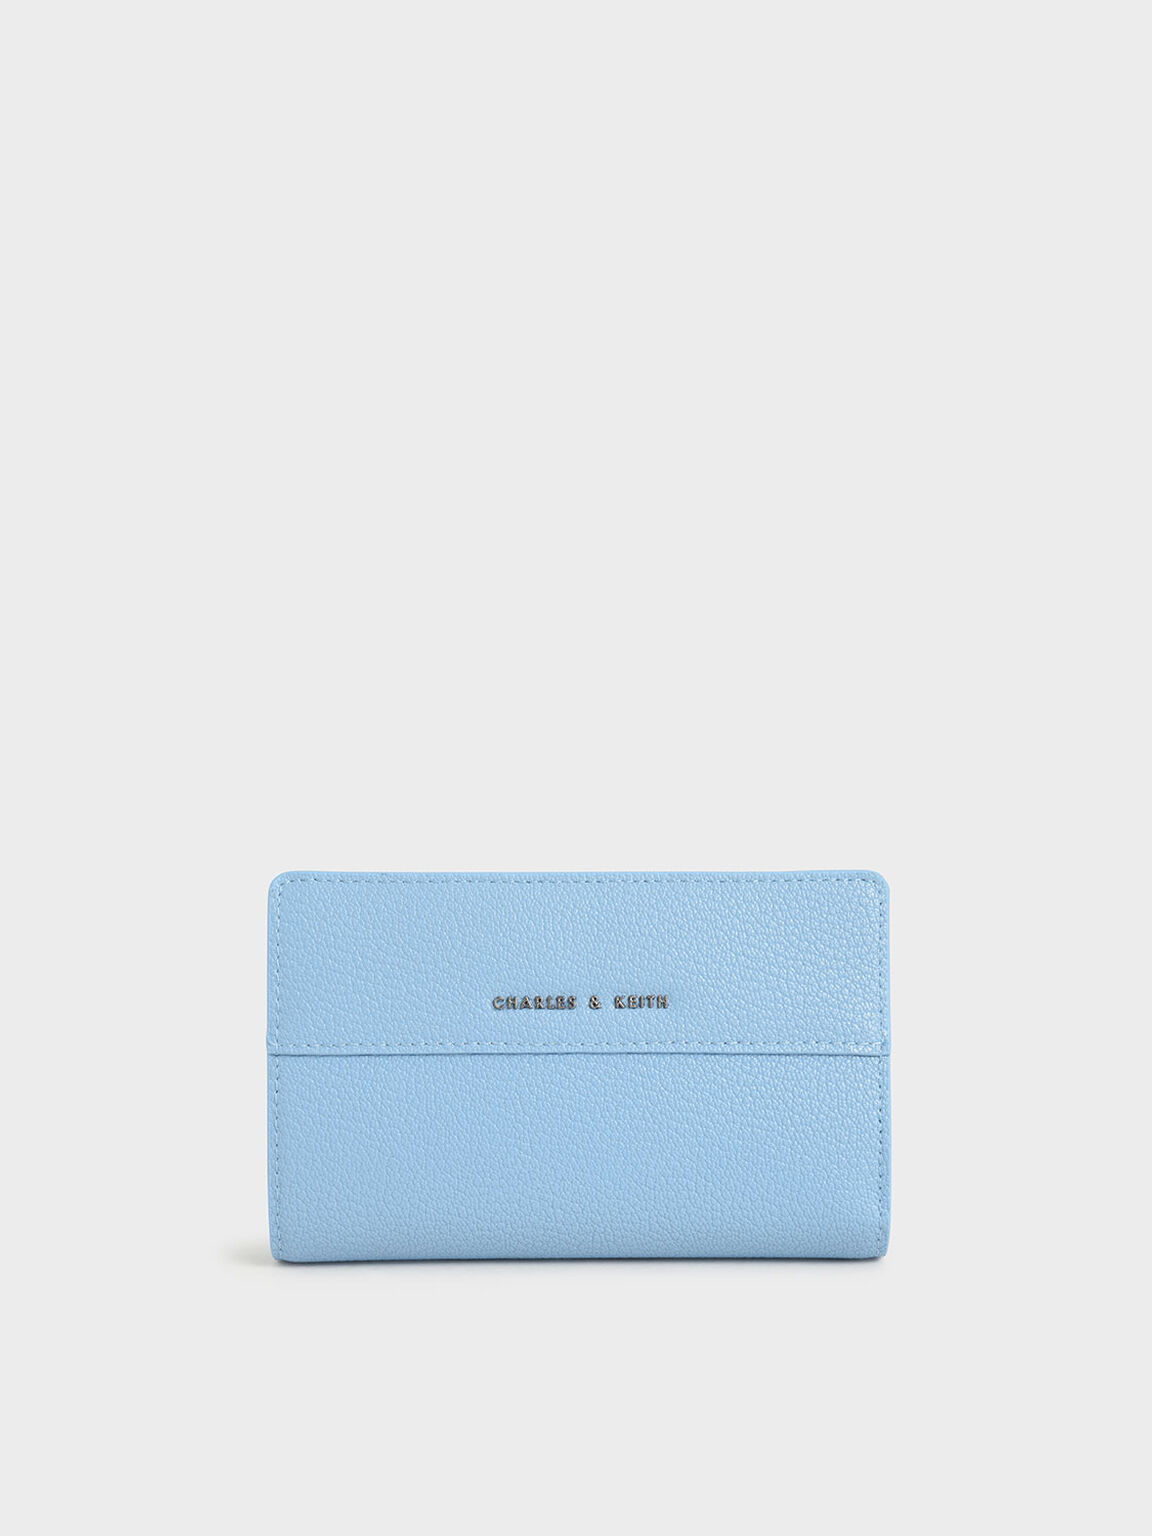 Snap Button Wallet, Denim Blue, hi-res